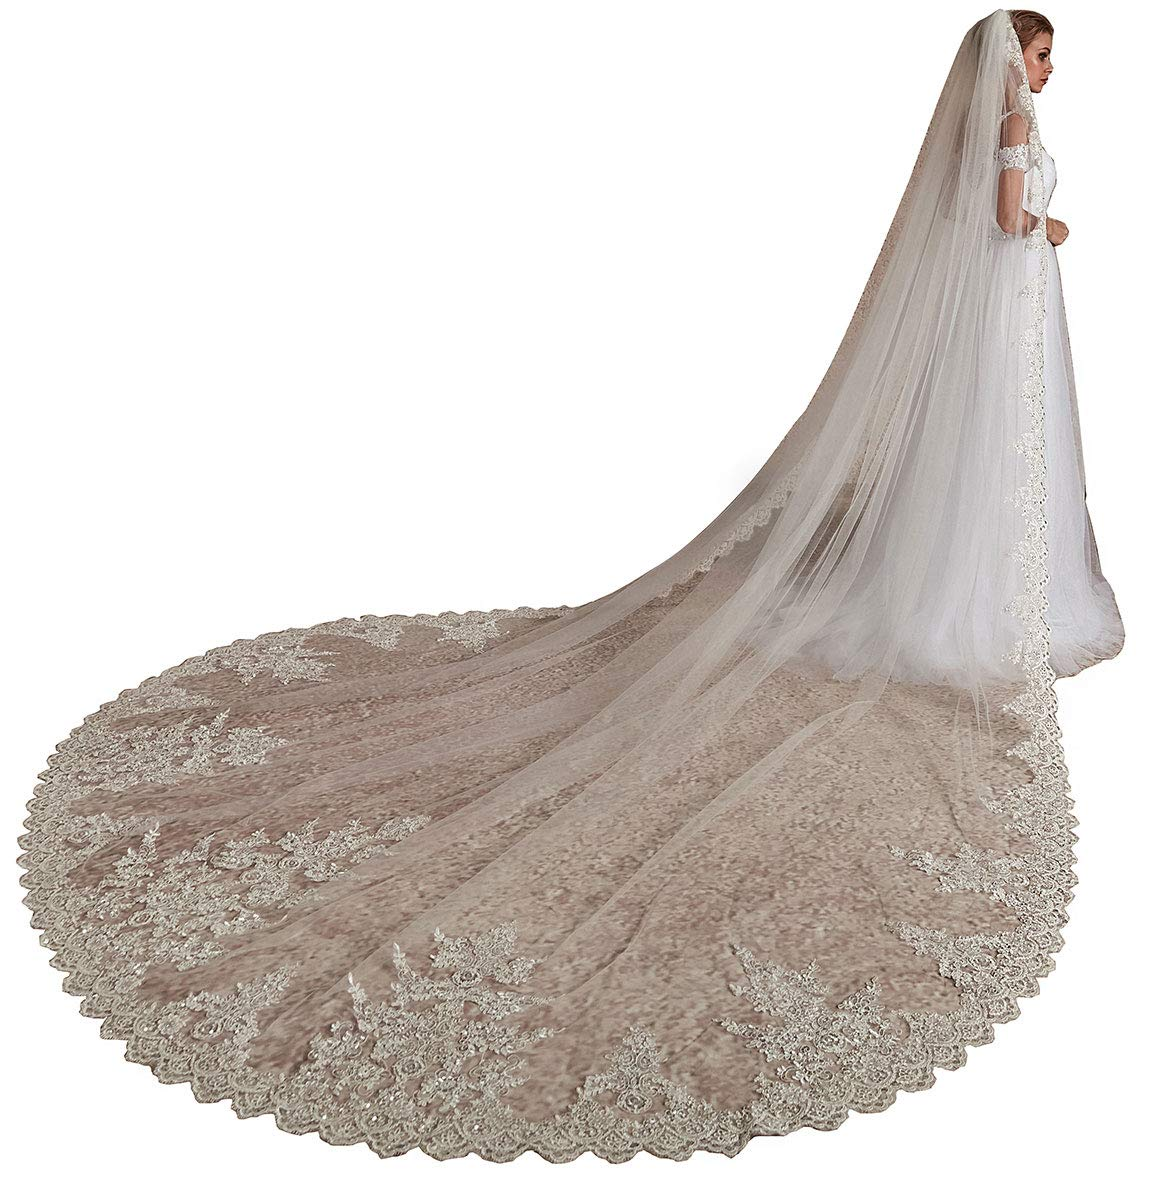 EllieHouse Women's Long Sequin Lace Ivory Wedding Bridal Veil With Metal Comb L72IV